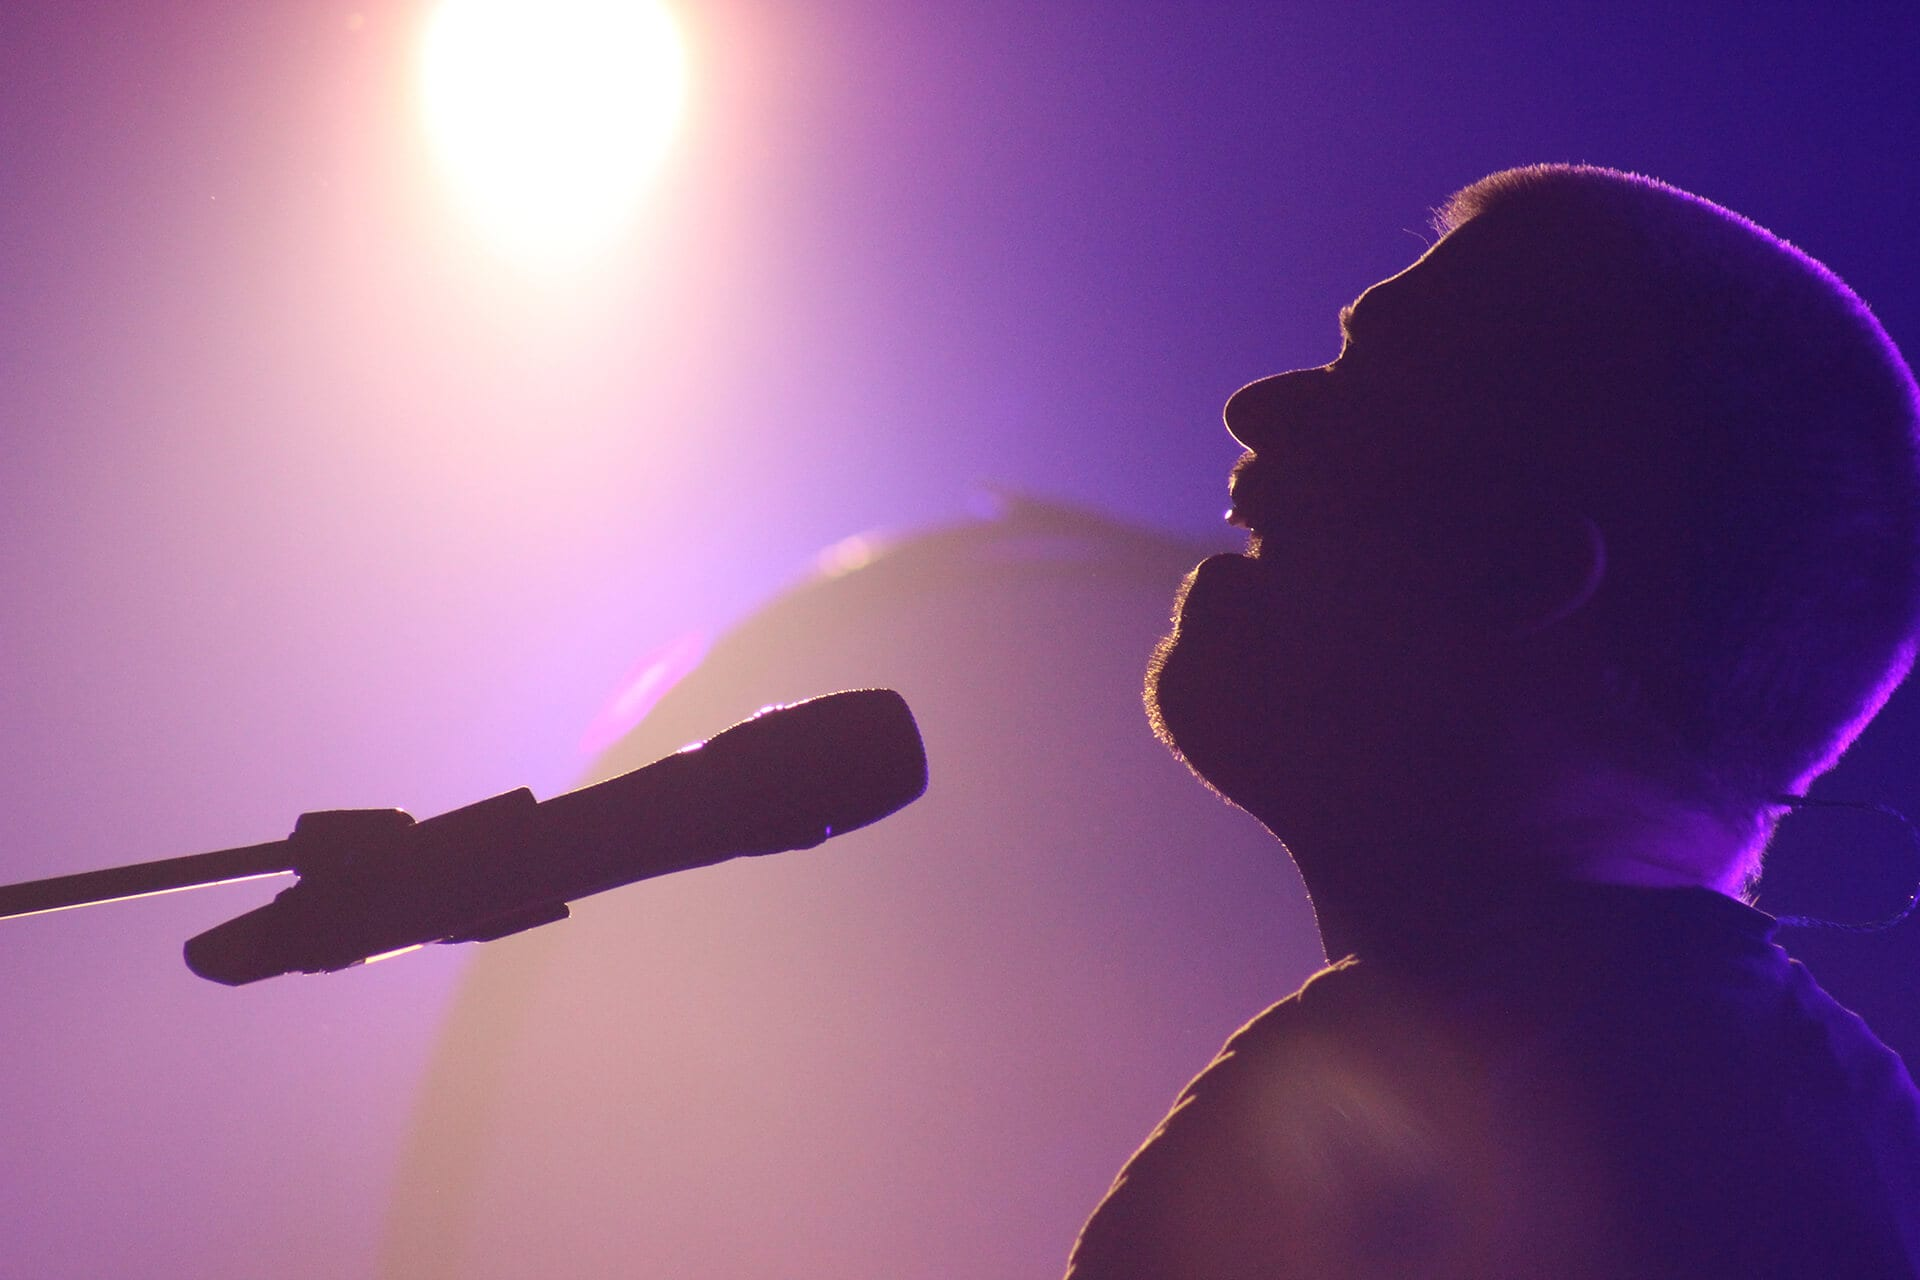 Man signing into a microphone under stage lights with a purple hue